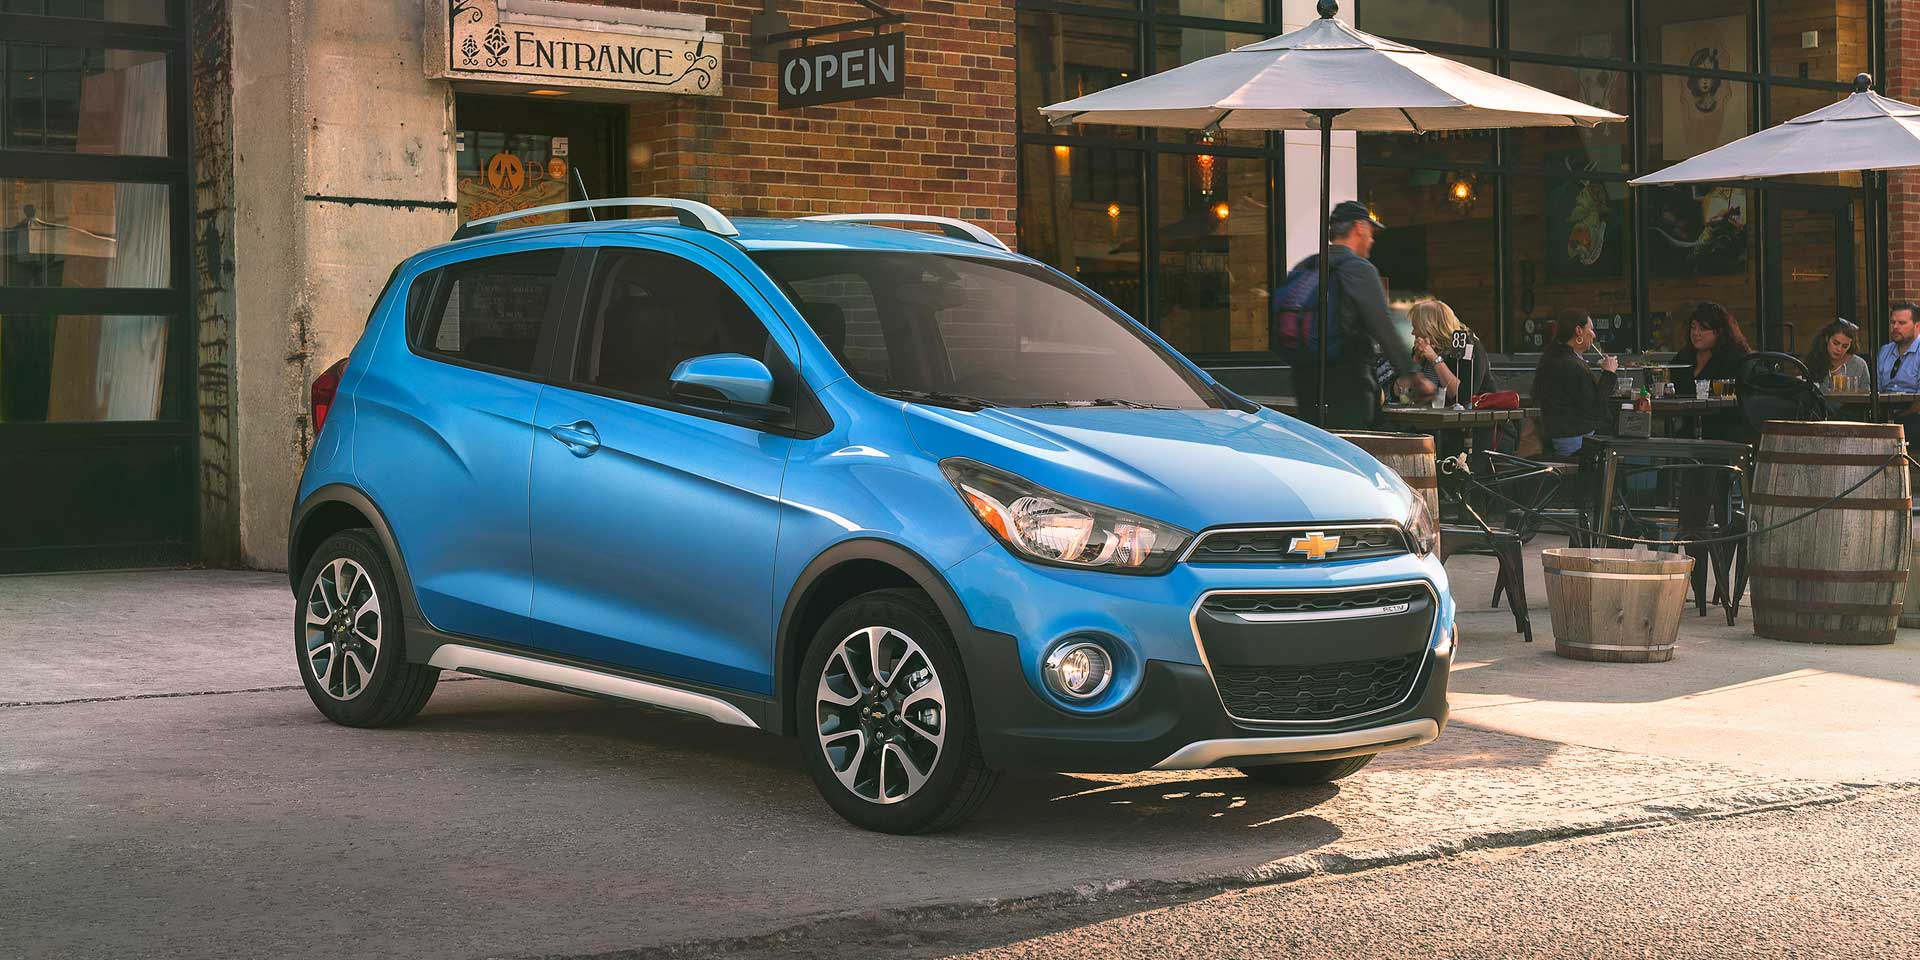 2018 Chevrolet Spark Vehicles On Display Chicago